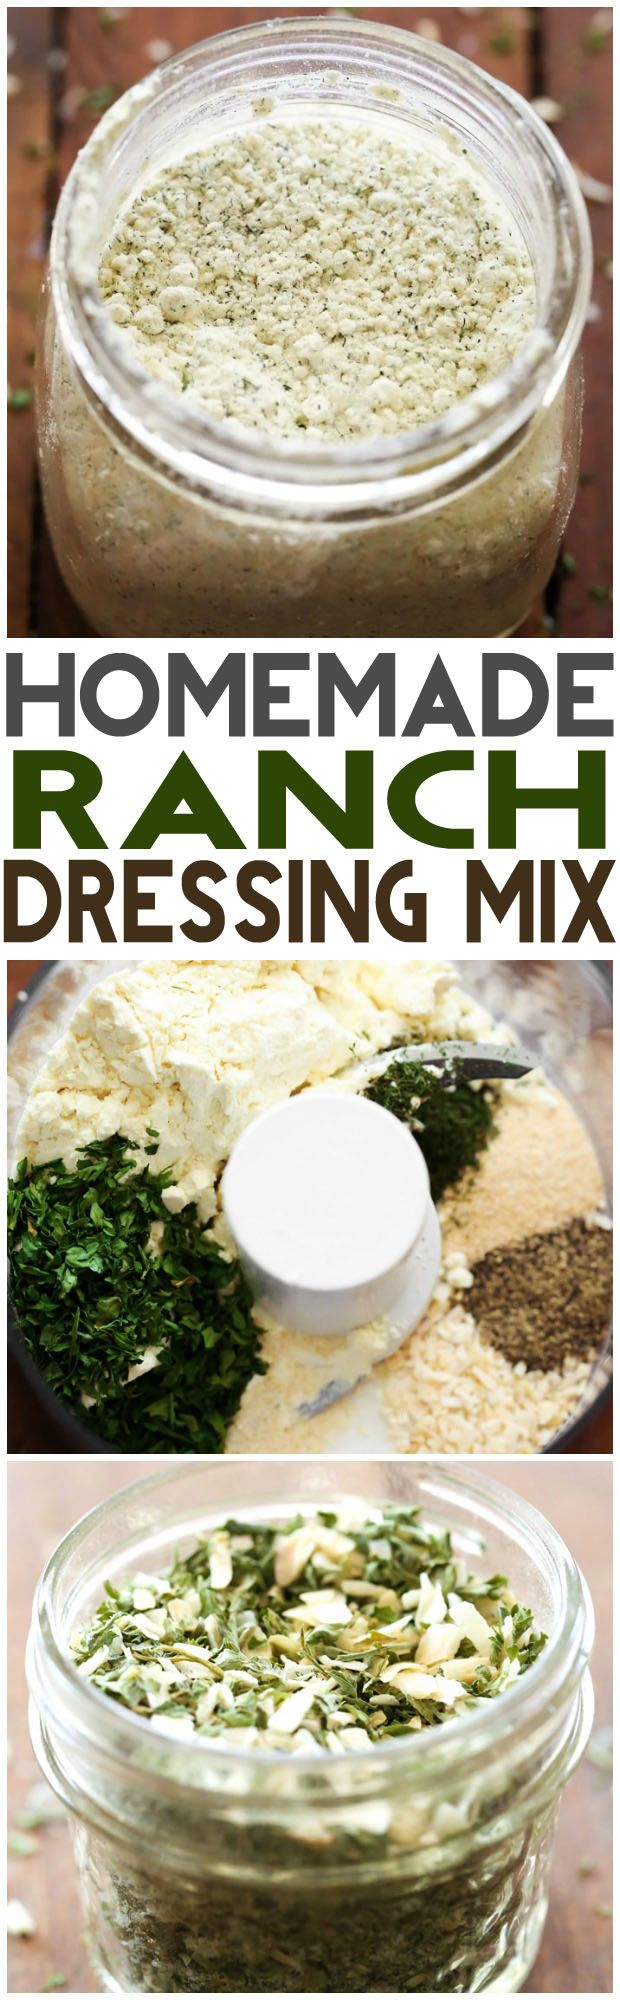 Homemade Ranch Dressing Mix... this is SO simple, so easy to make and is GREAT to have on hand! It tastes so much better homemade!